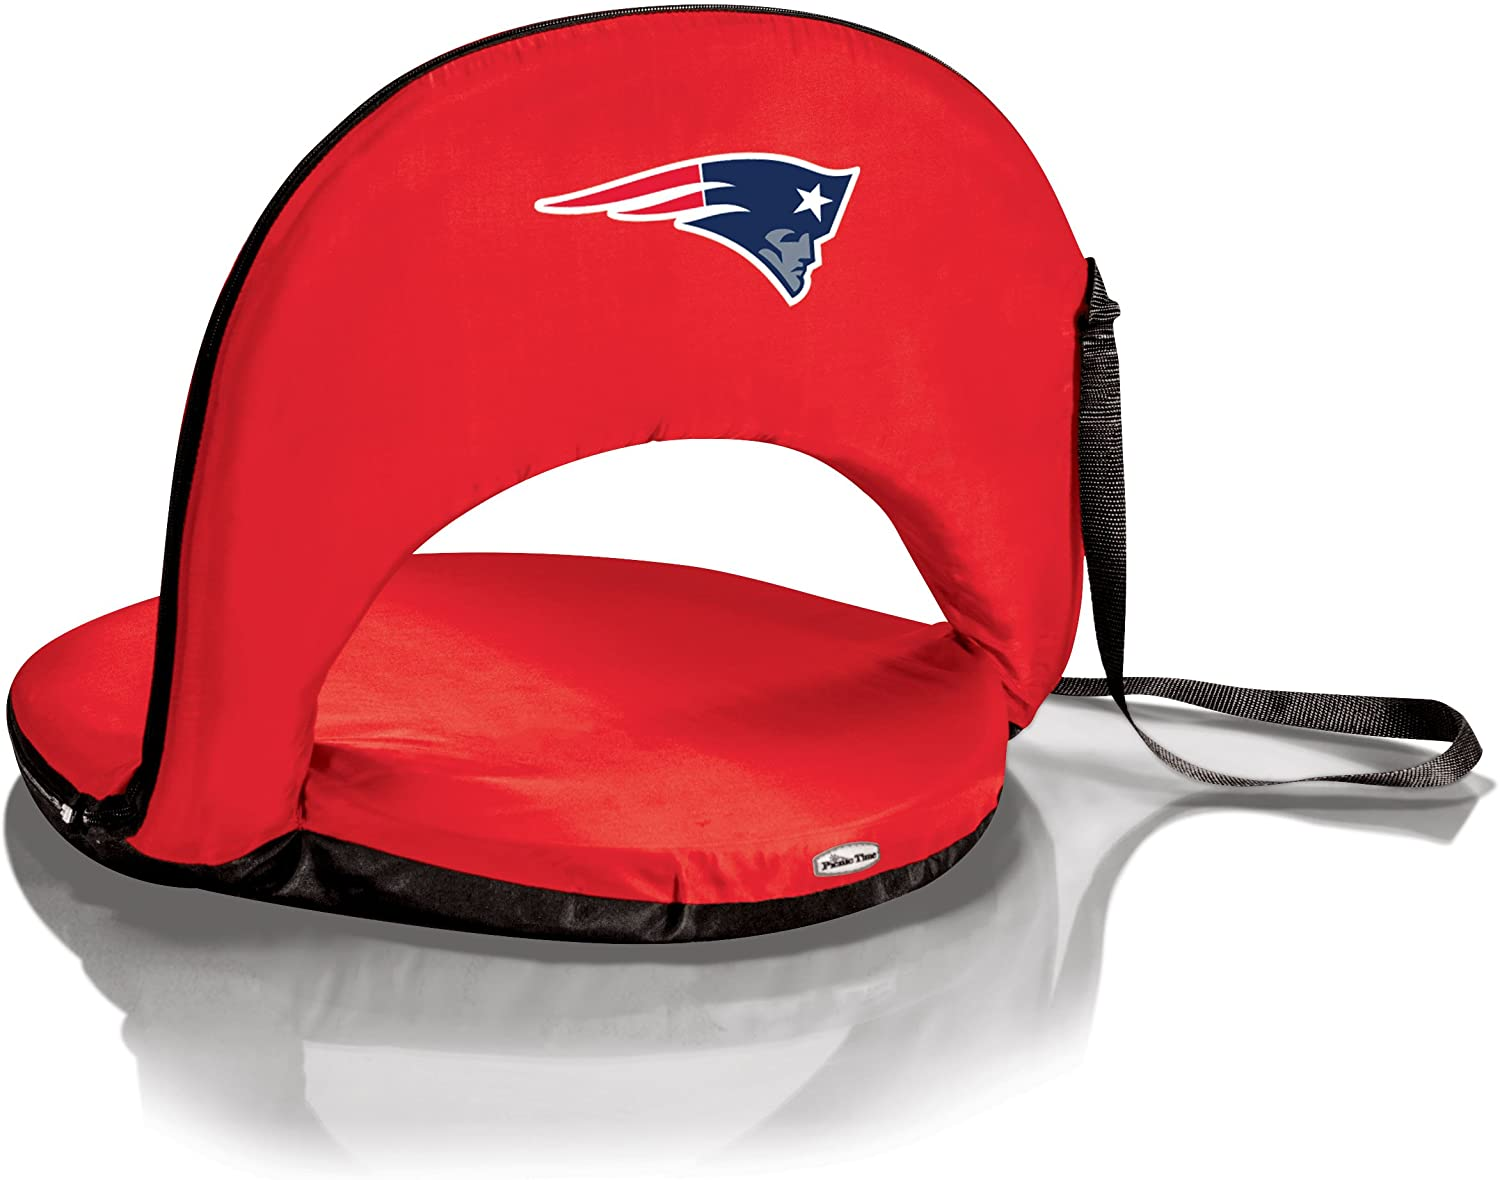 NFL New England Patriots Oniva Portable Reclining Seat, Red